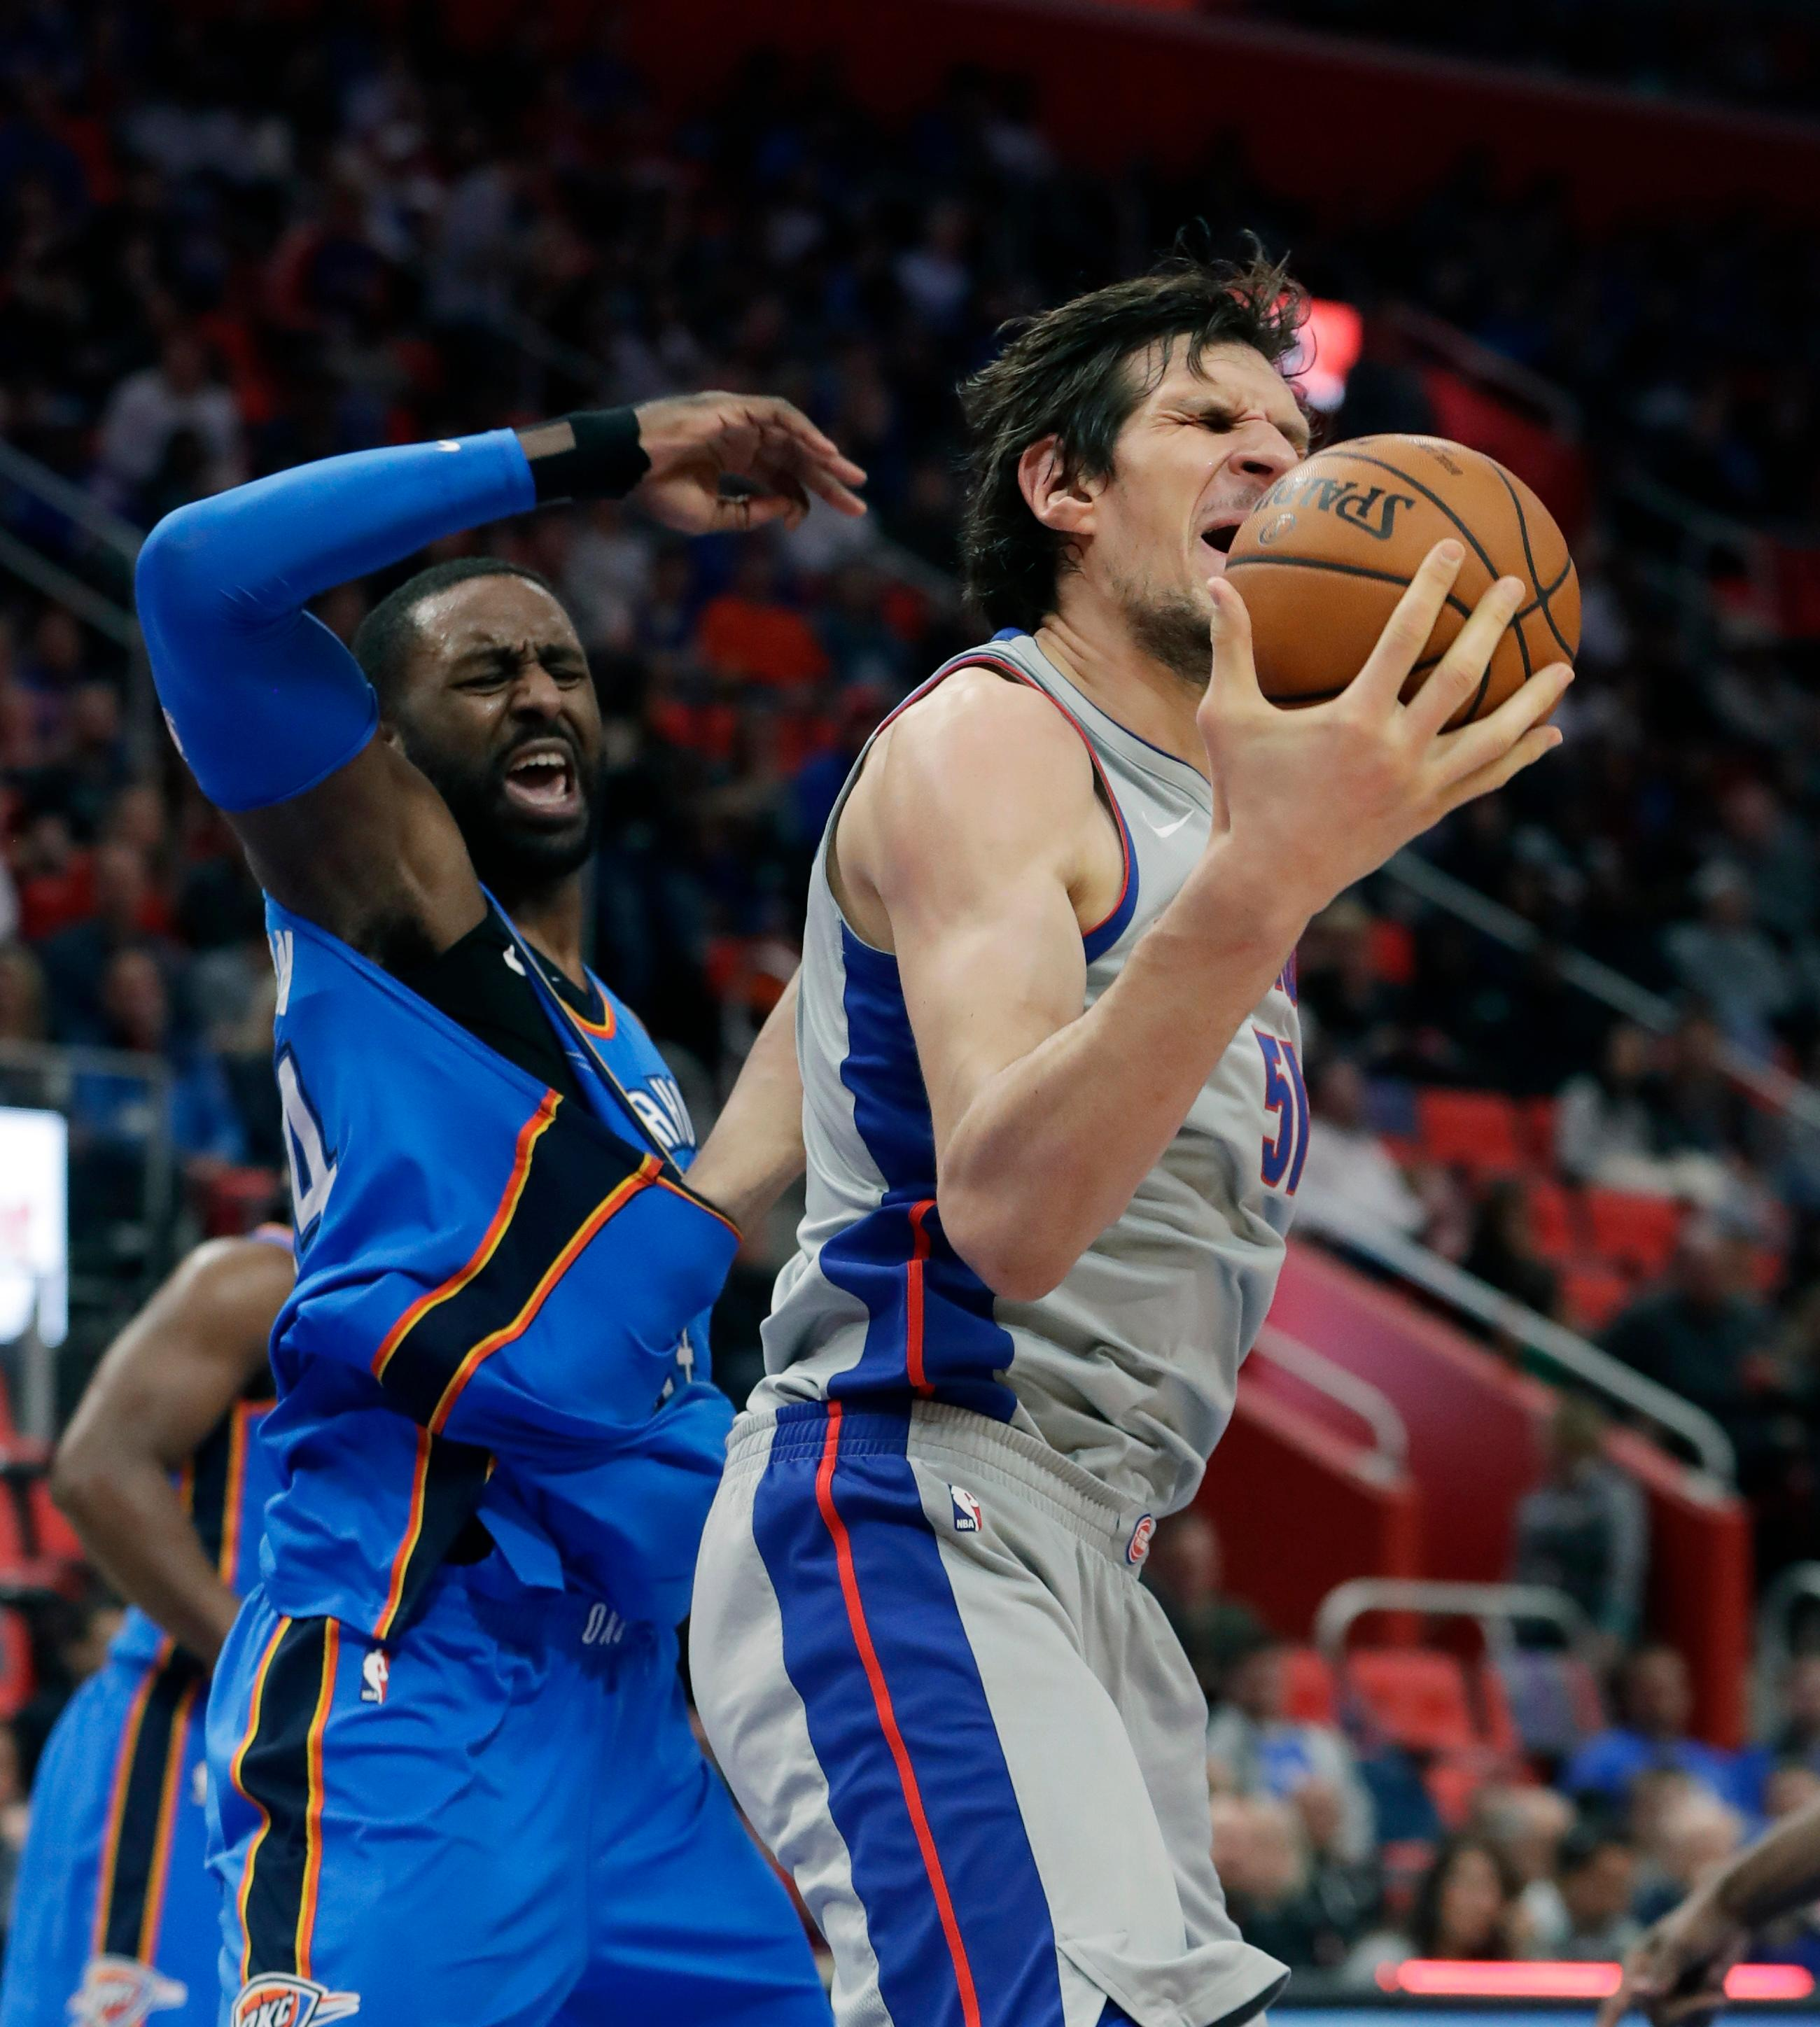 Detroit Pistons center Boban Marjanovic, right, and Oklahoma City Thunder forward Patrick Patterson react as Marjanovic recovers a rebound but has his left arm stuck in Patterson's jersey during the first half of an NBA basketball game Saturday, Jan. 27, 2018, in Detroit. (AP Photo/Carlos Osorio)